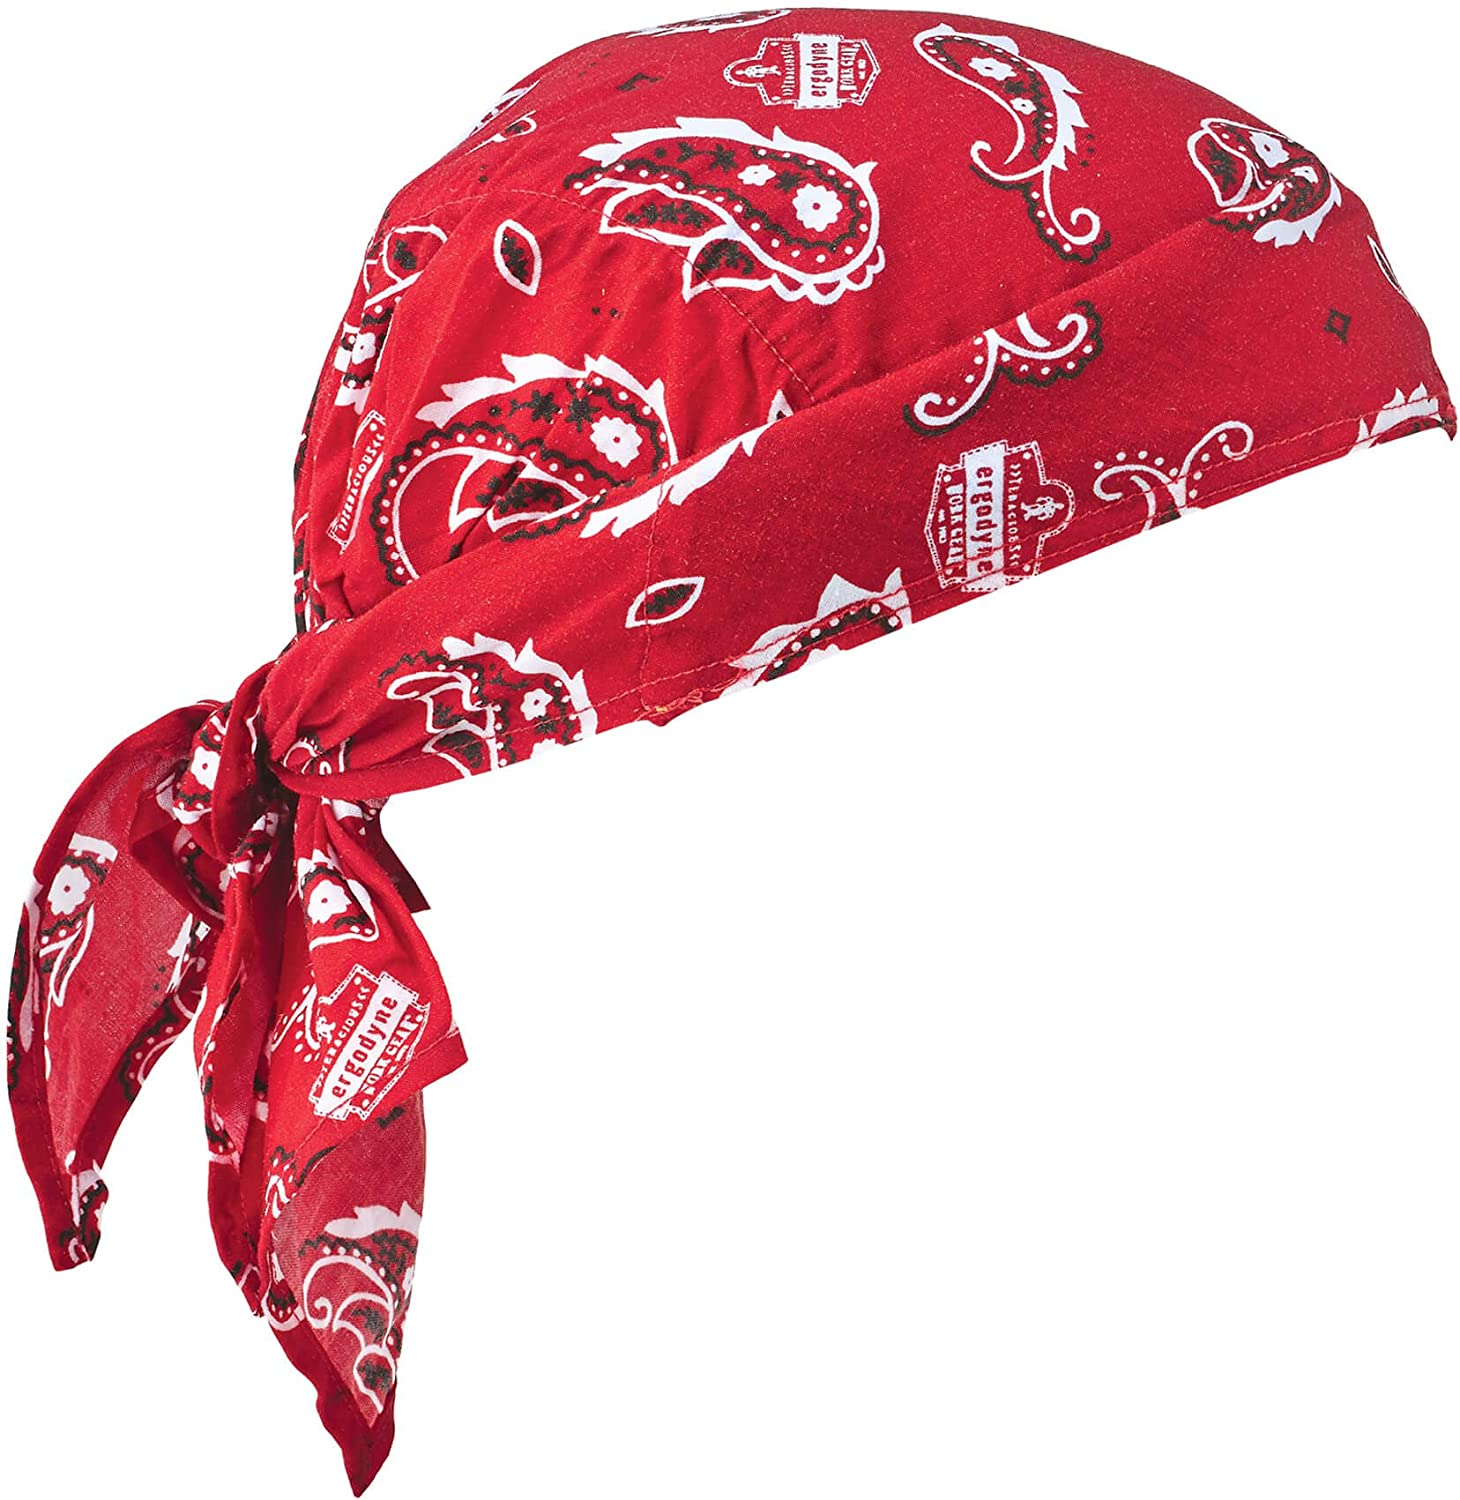 Ergodyne Chill-Its 6710CT Evaporative Cooling Dew Rag, Red Western